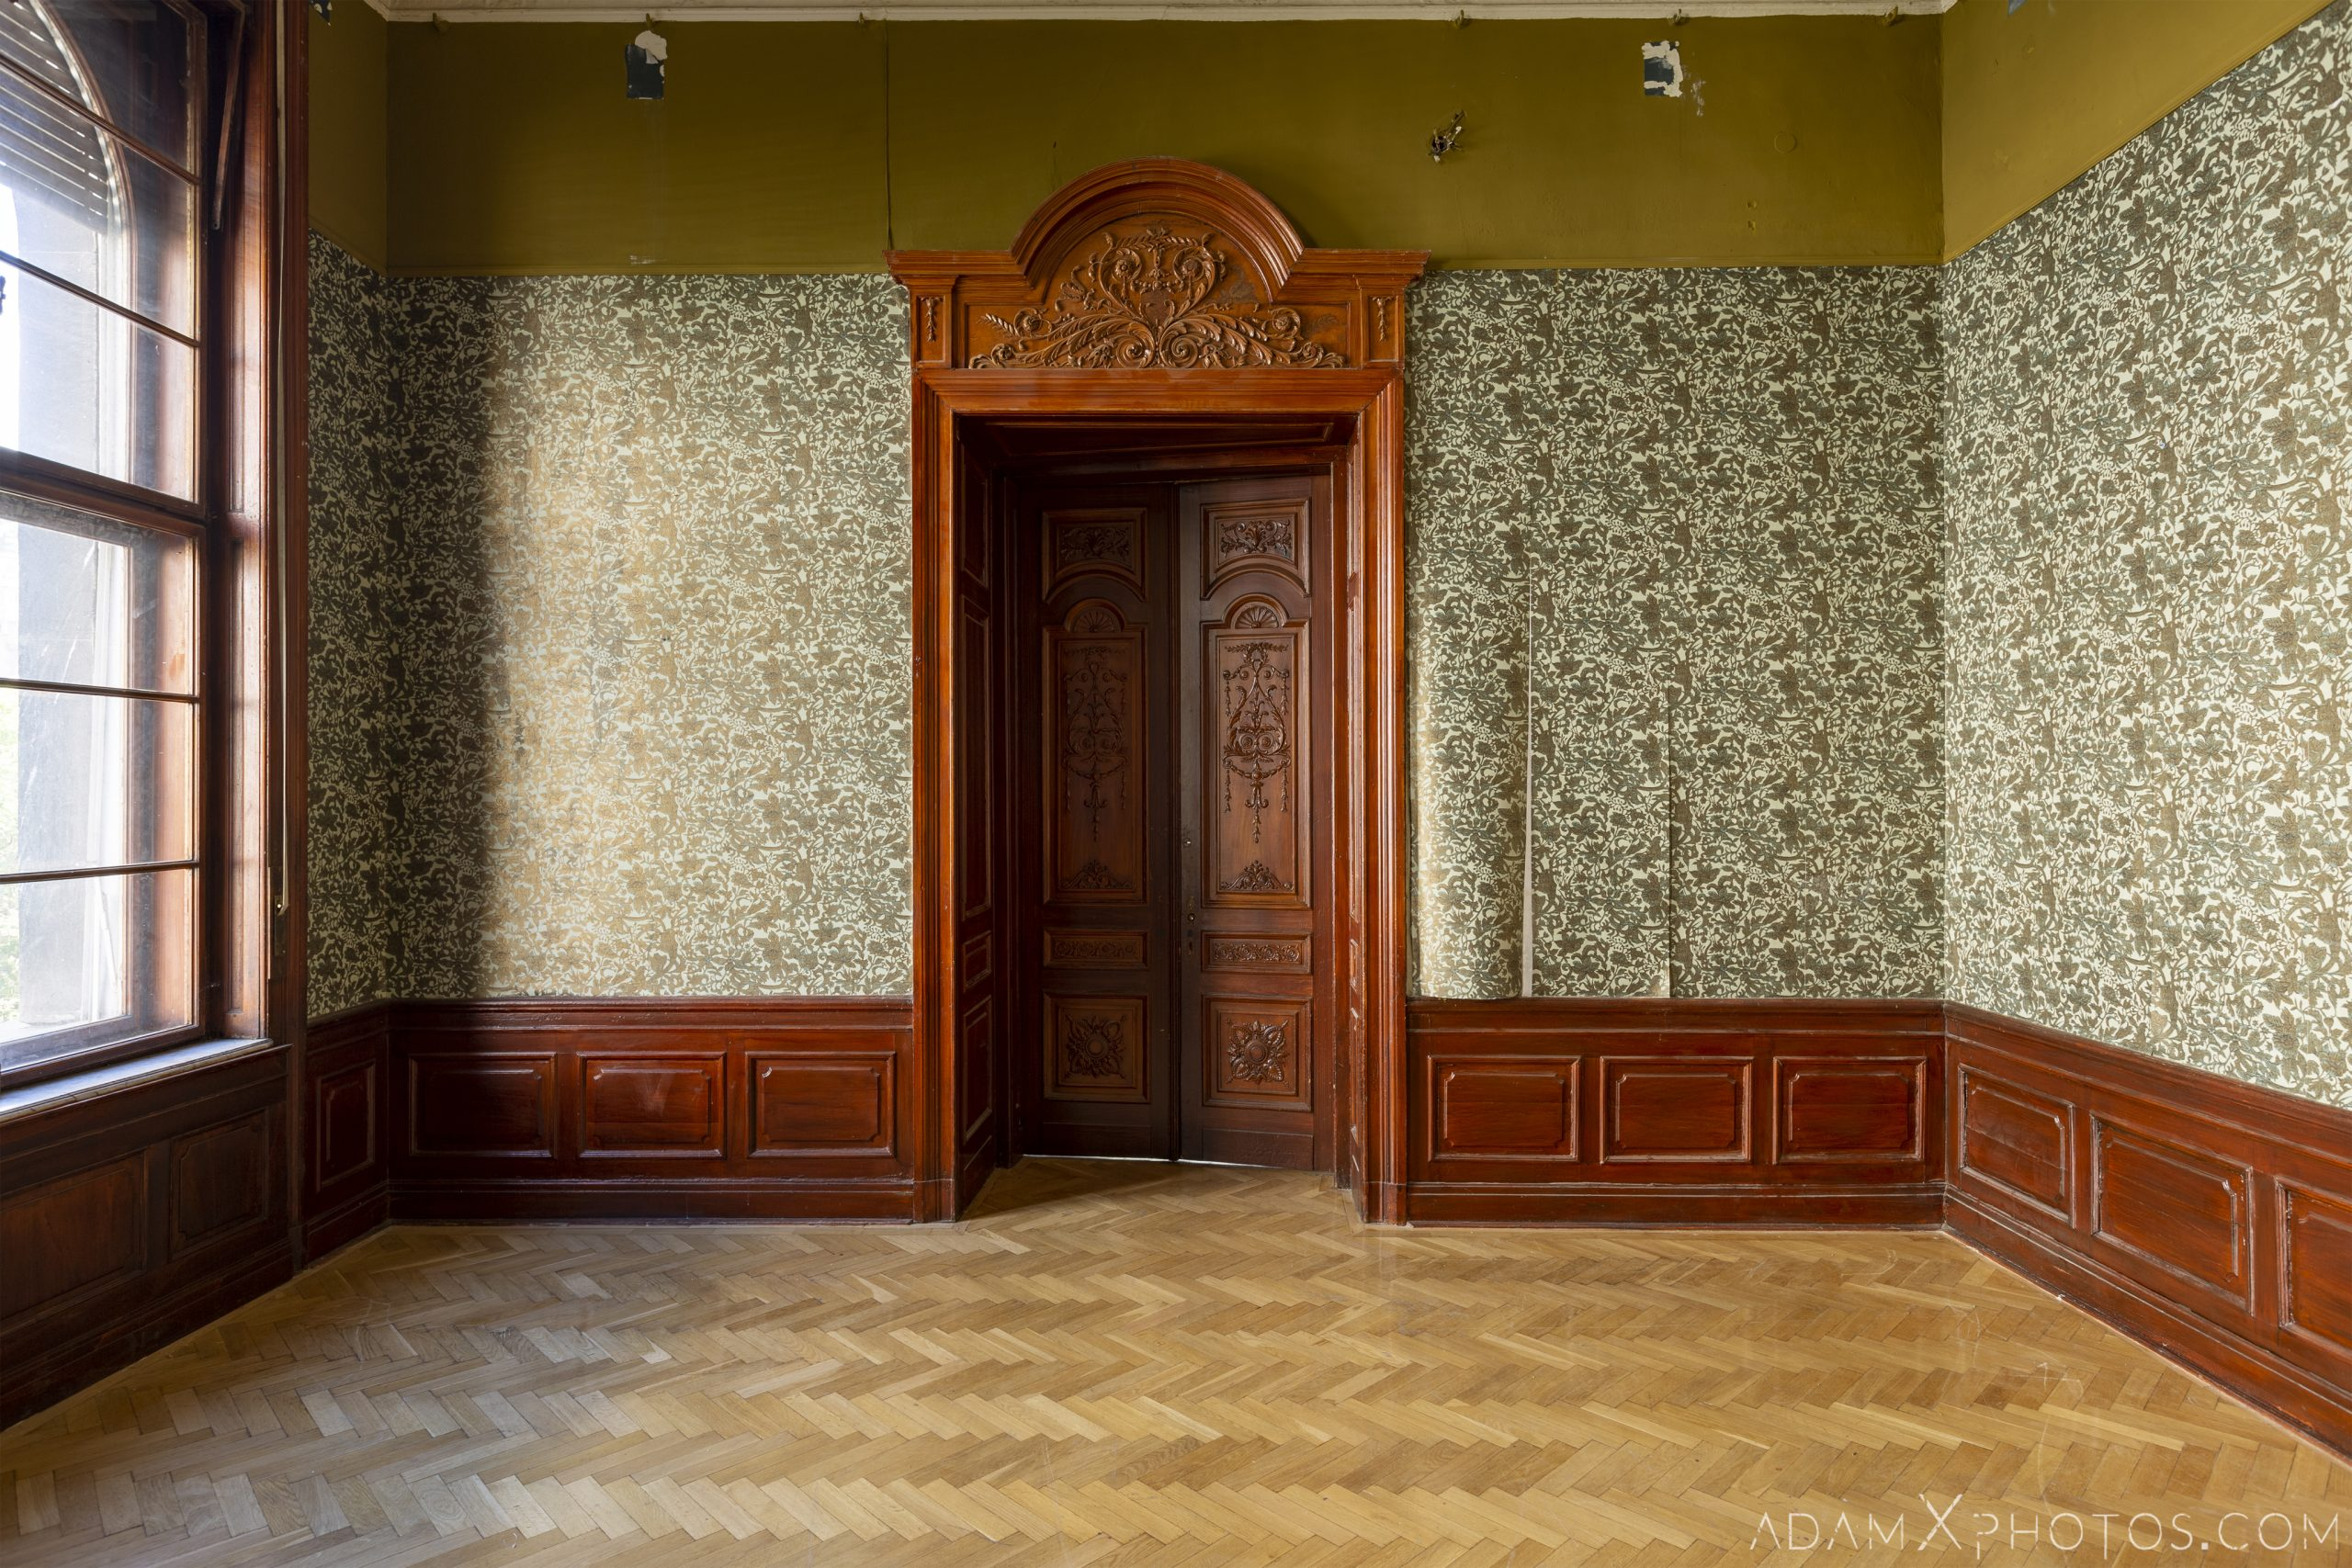 Wallpaper parquet Adria Palace Budapest Hungary Adam X Urbex Urban Exploration Access 2018 Blade Runner 2049 Abandoned decay ruins lost forgotten derelict location creepy haunting eerie security ornate grand neo baroque